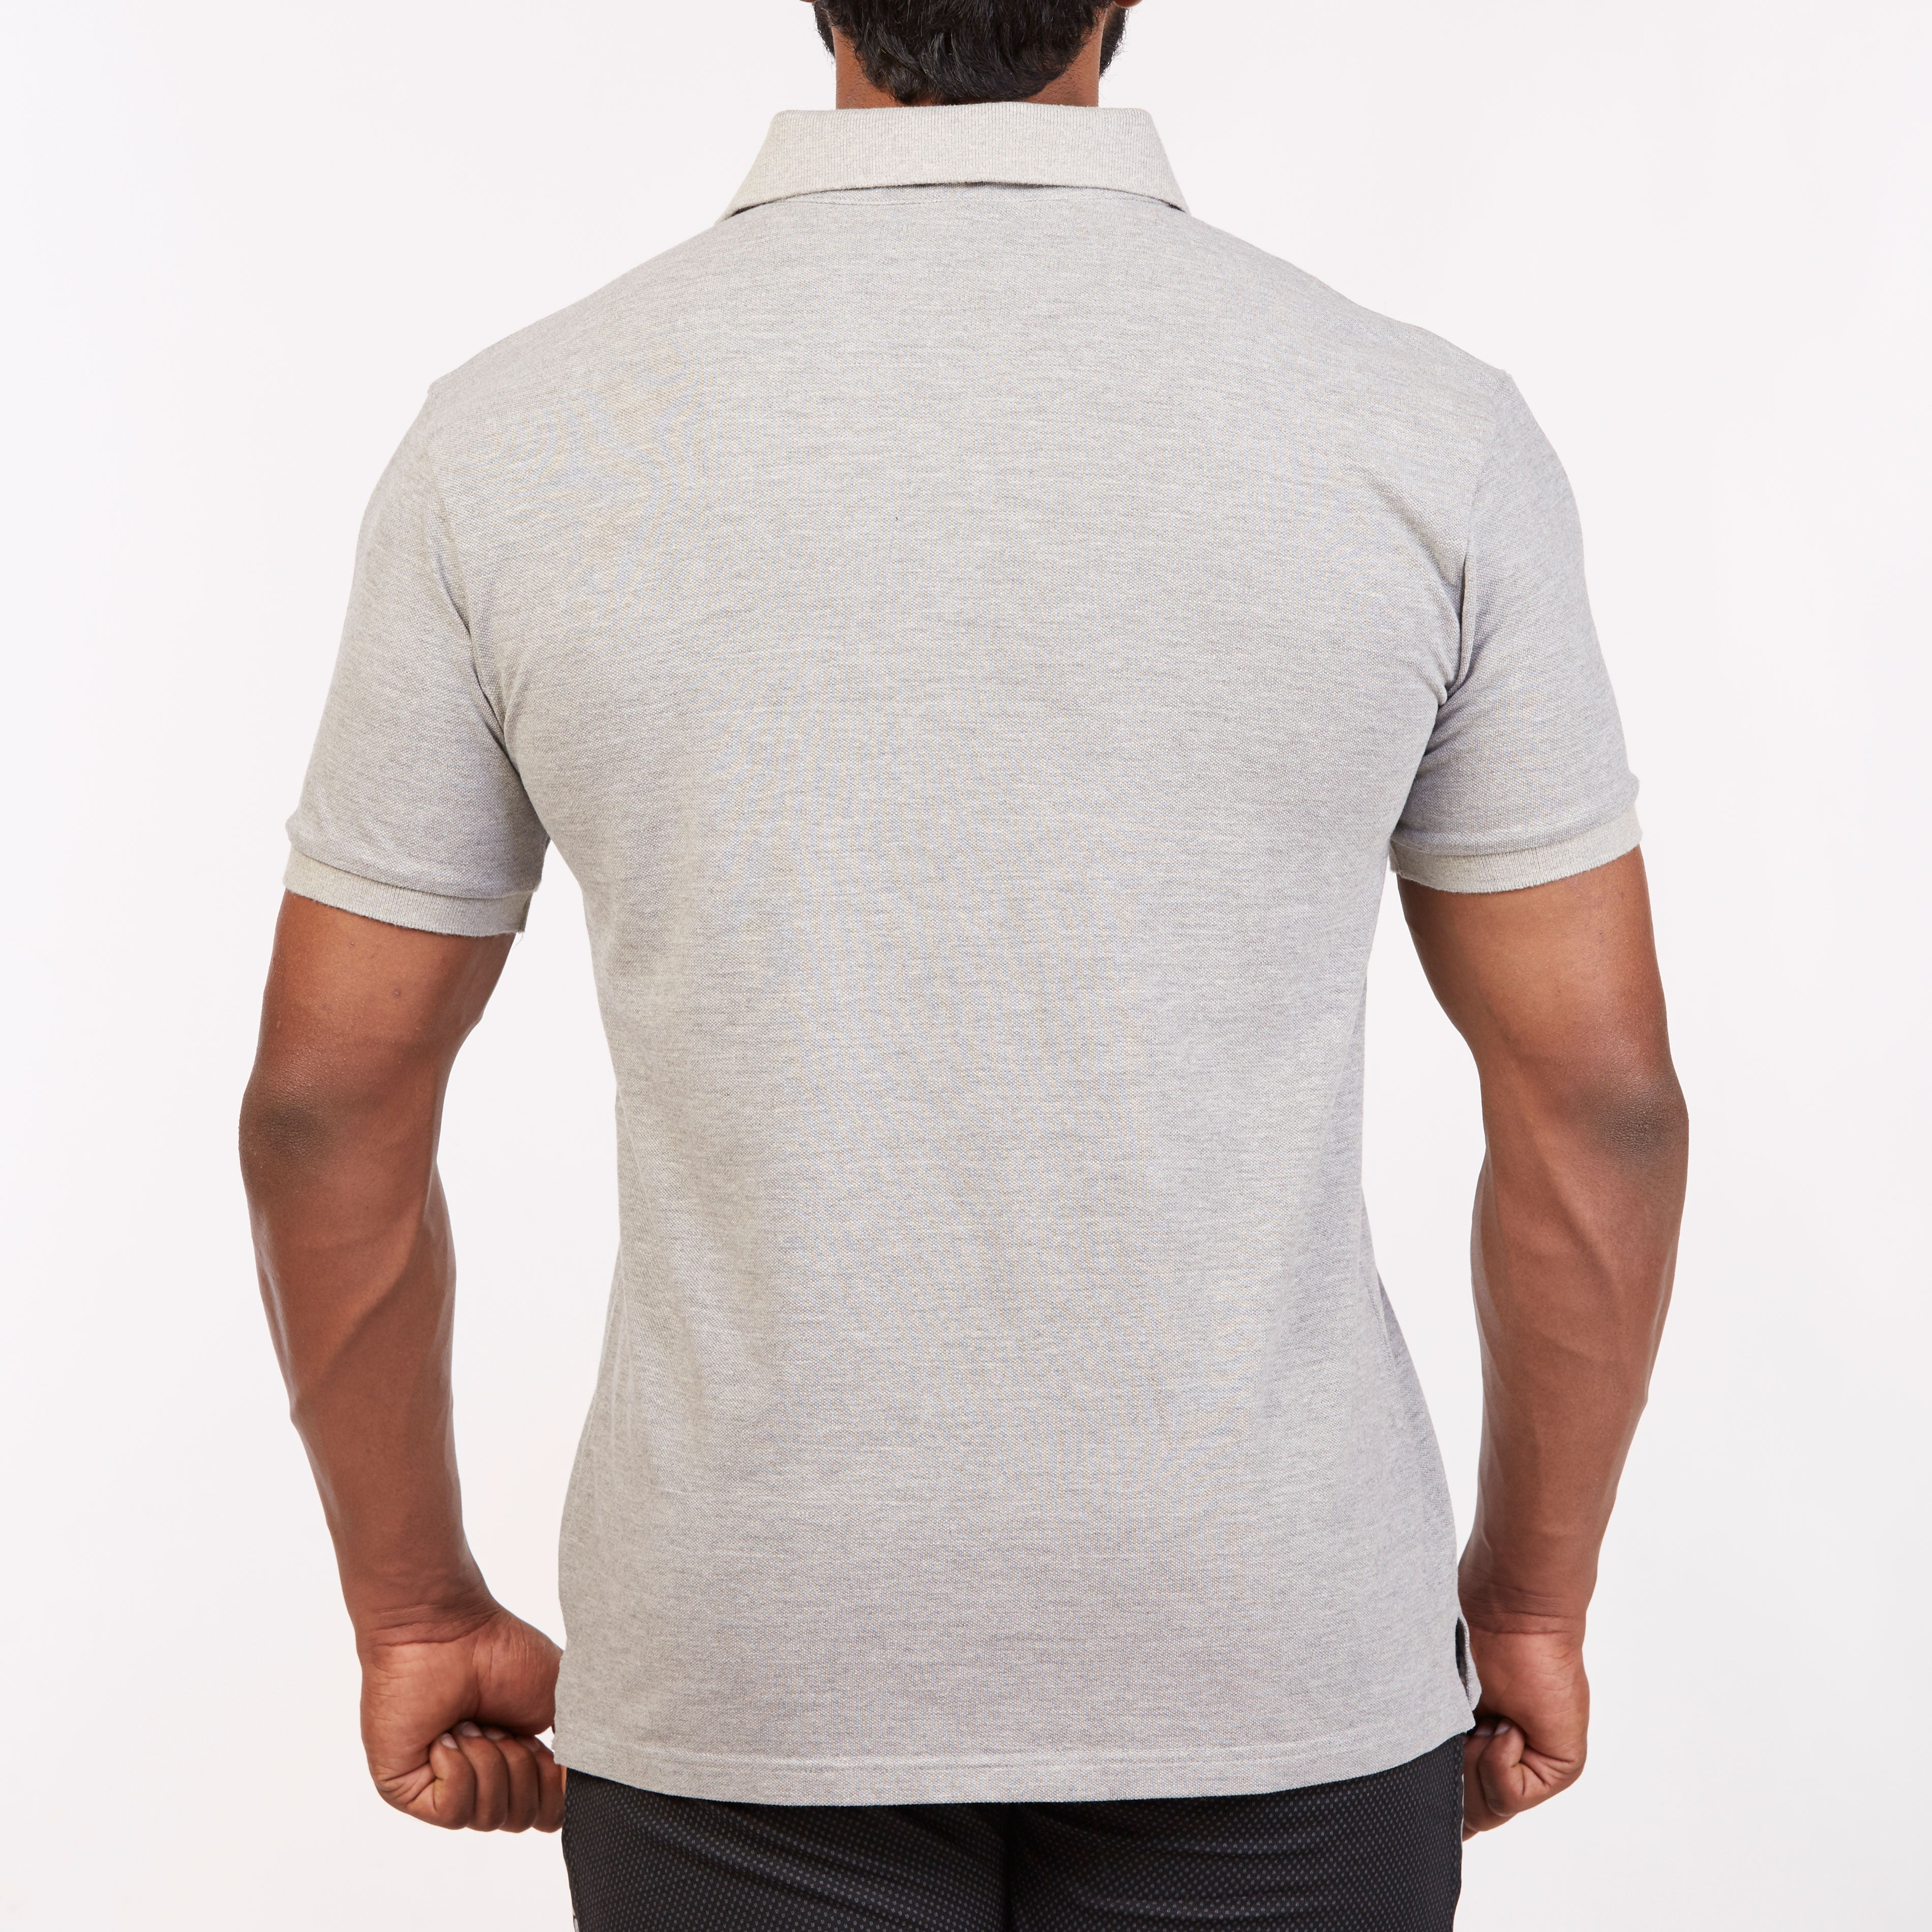 DB024 Polo T-Shirt - Grey Melange